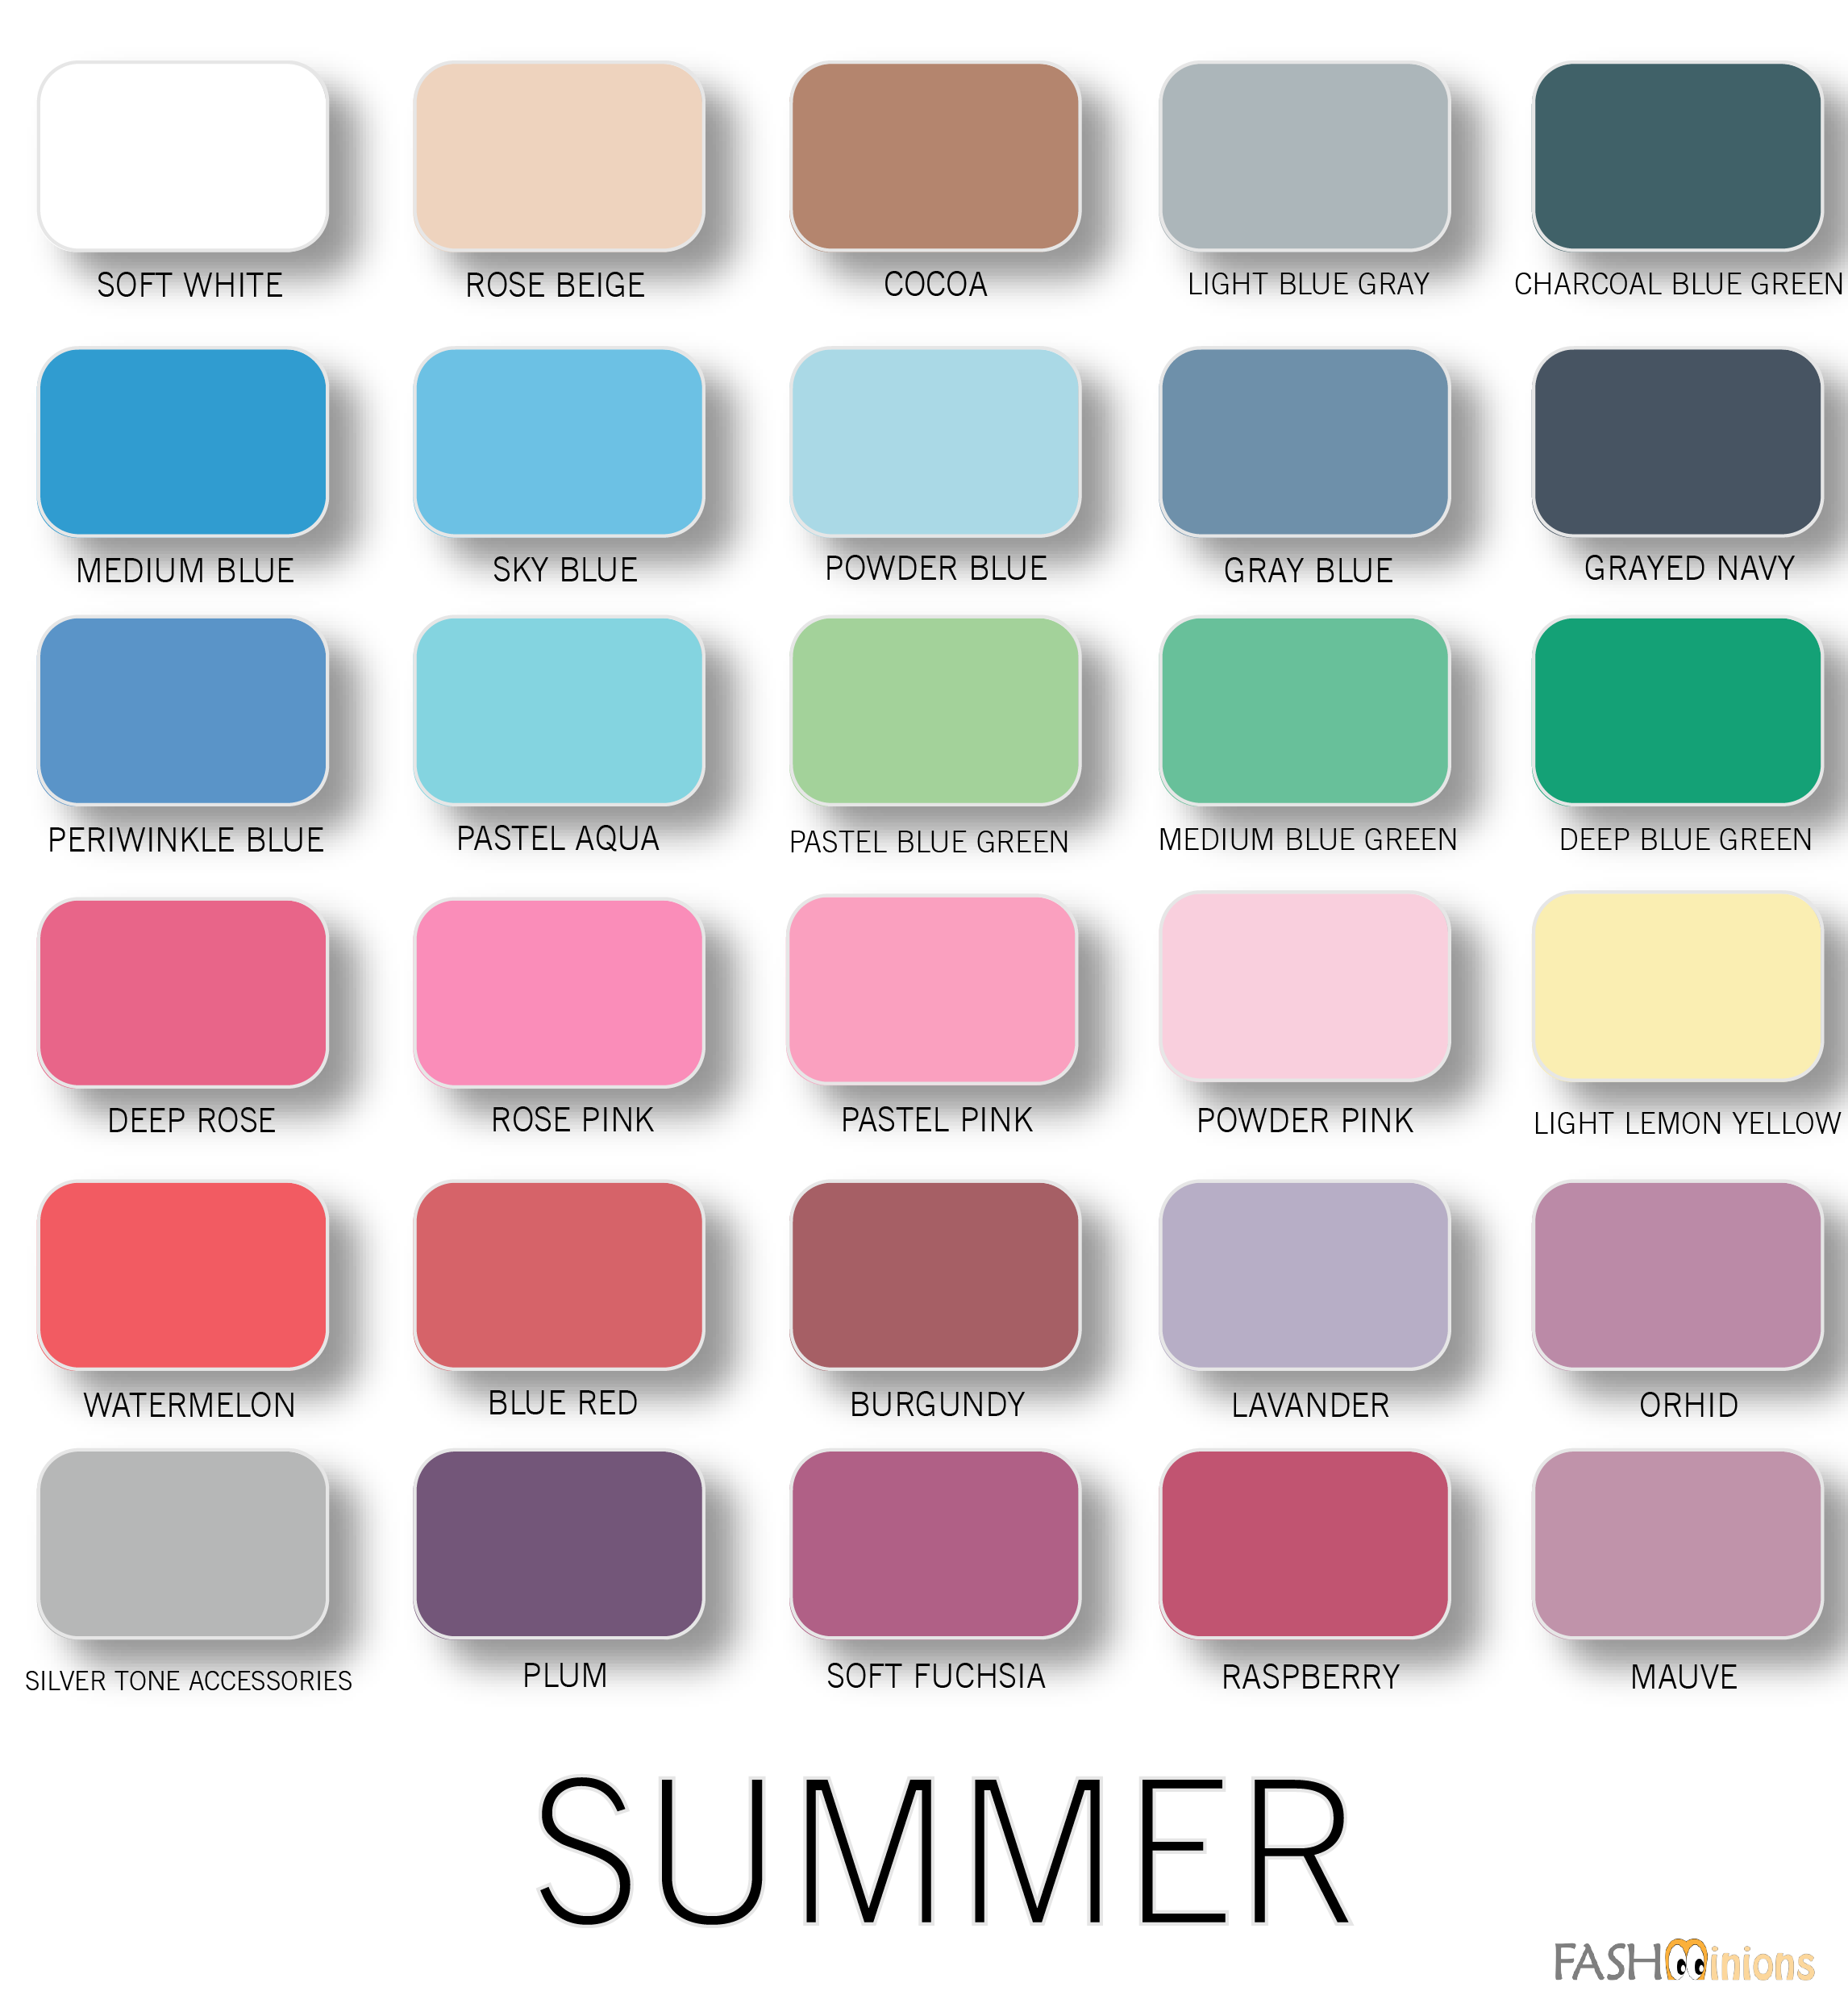 image library stock The Summer glow in the pastels of June